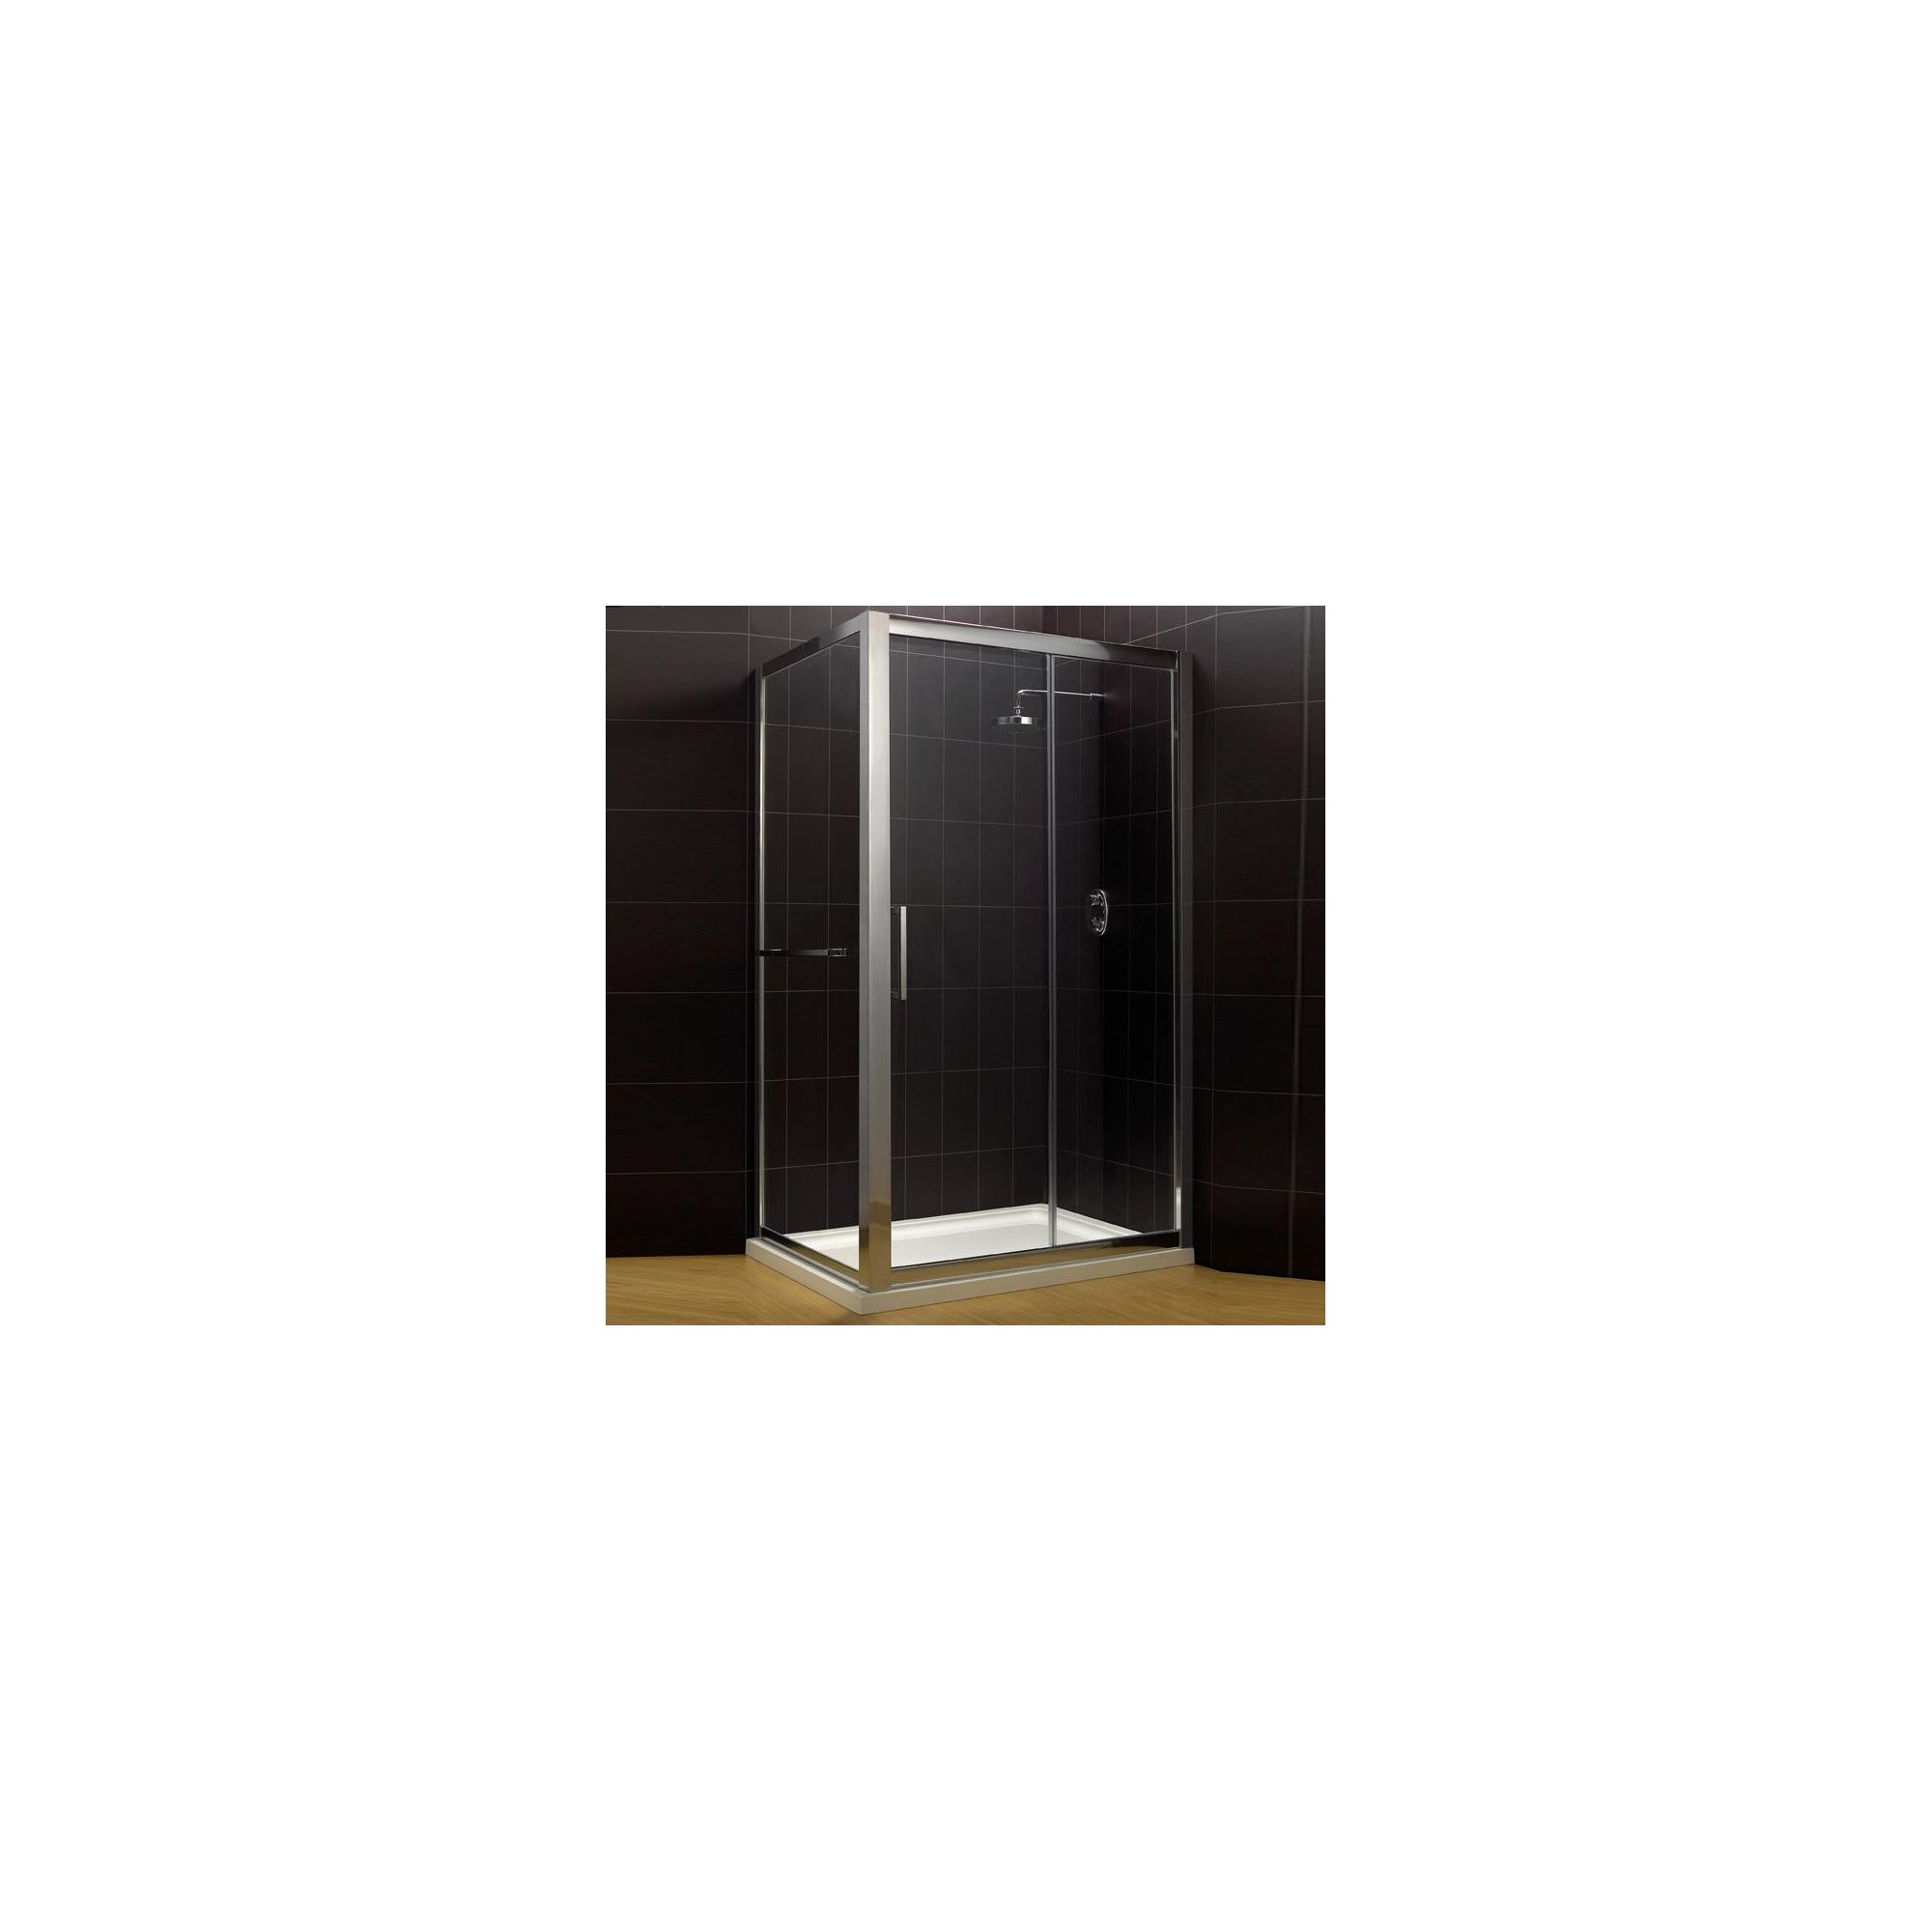 Duchy Supreme Silver Sliding Door Shower Enclosure, 1700mm x 700mm, Standard Tray, 8mm Glass at Tesco Direct